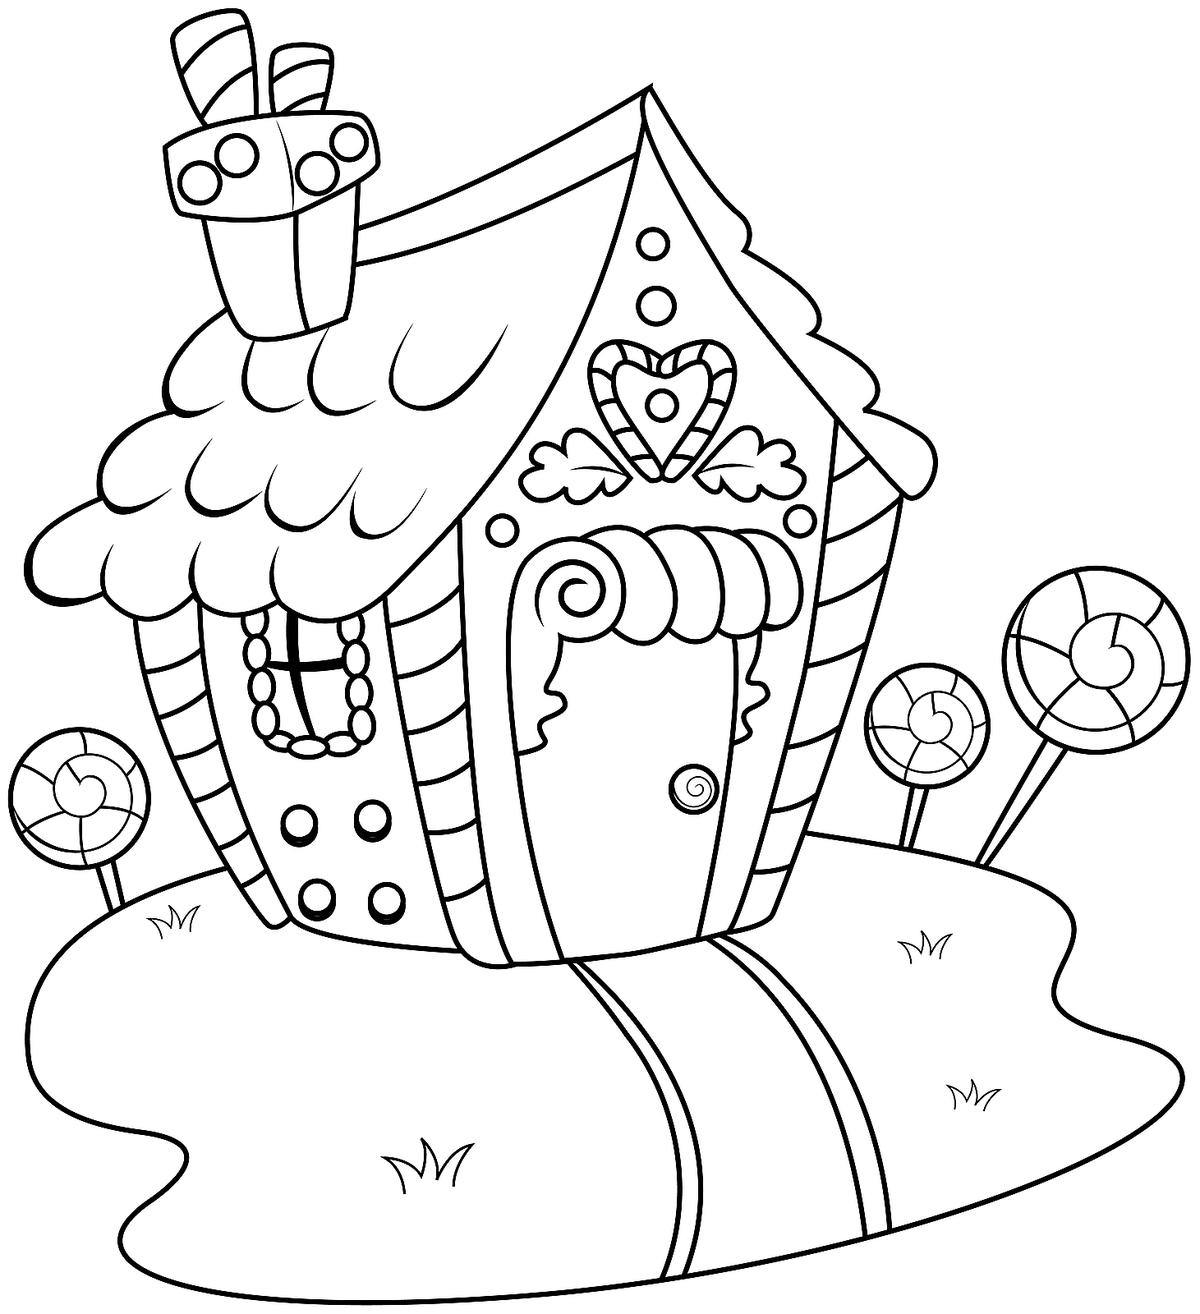 gingerbread house colouring pages 30 free gingerbread house coloring pages printable colouring pages house gingerbread